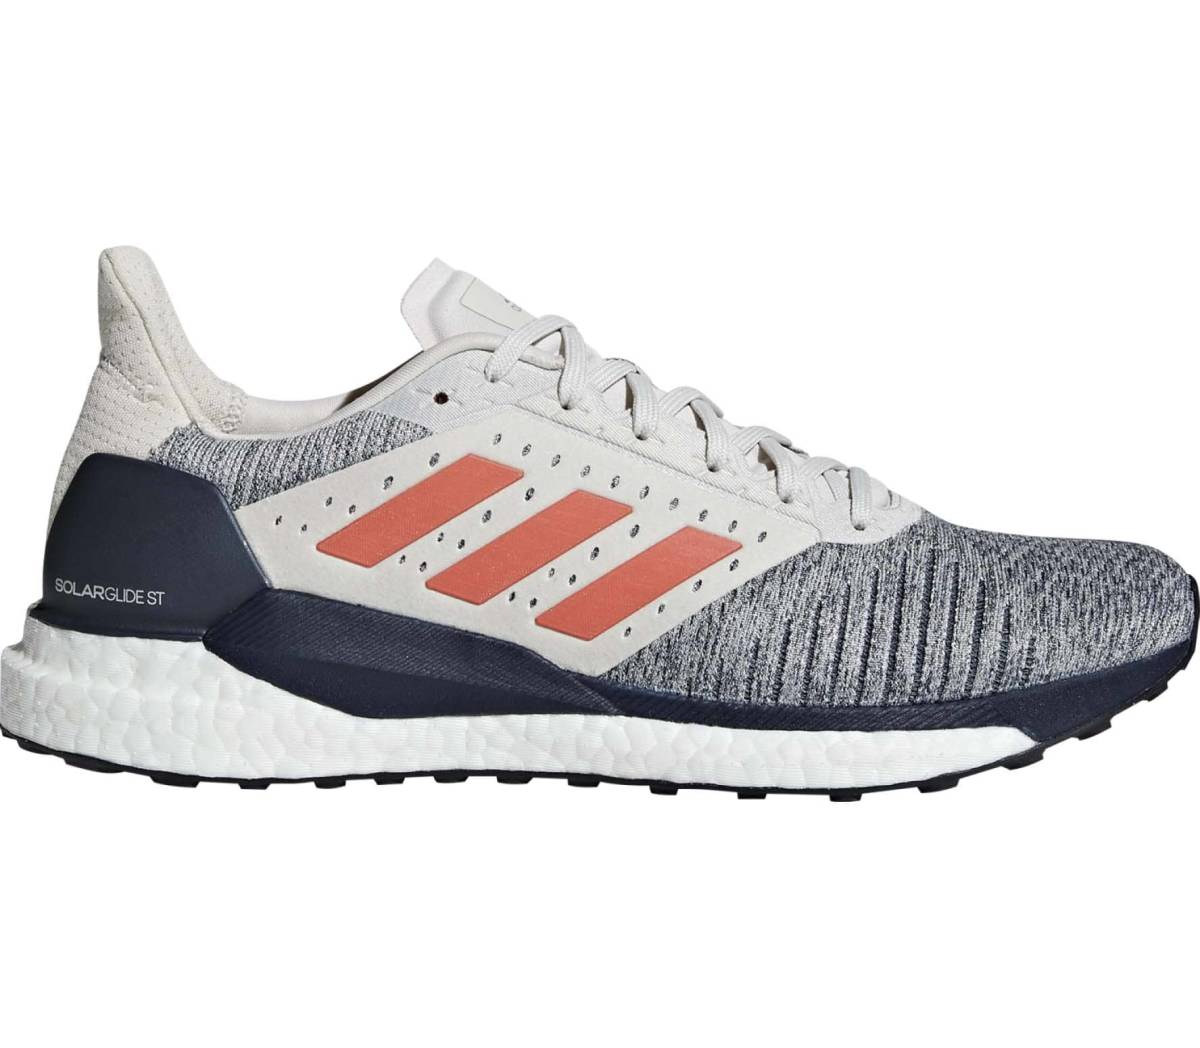 Adidas SolarGlideST M - White